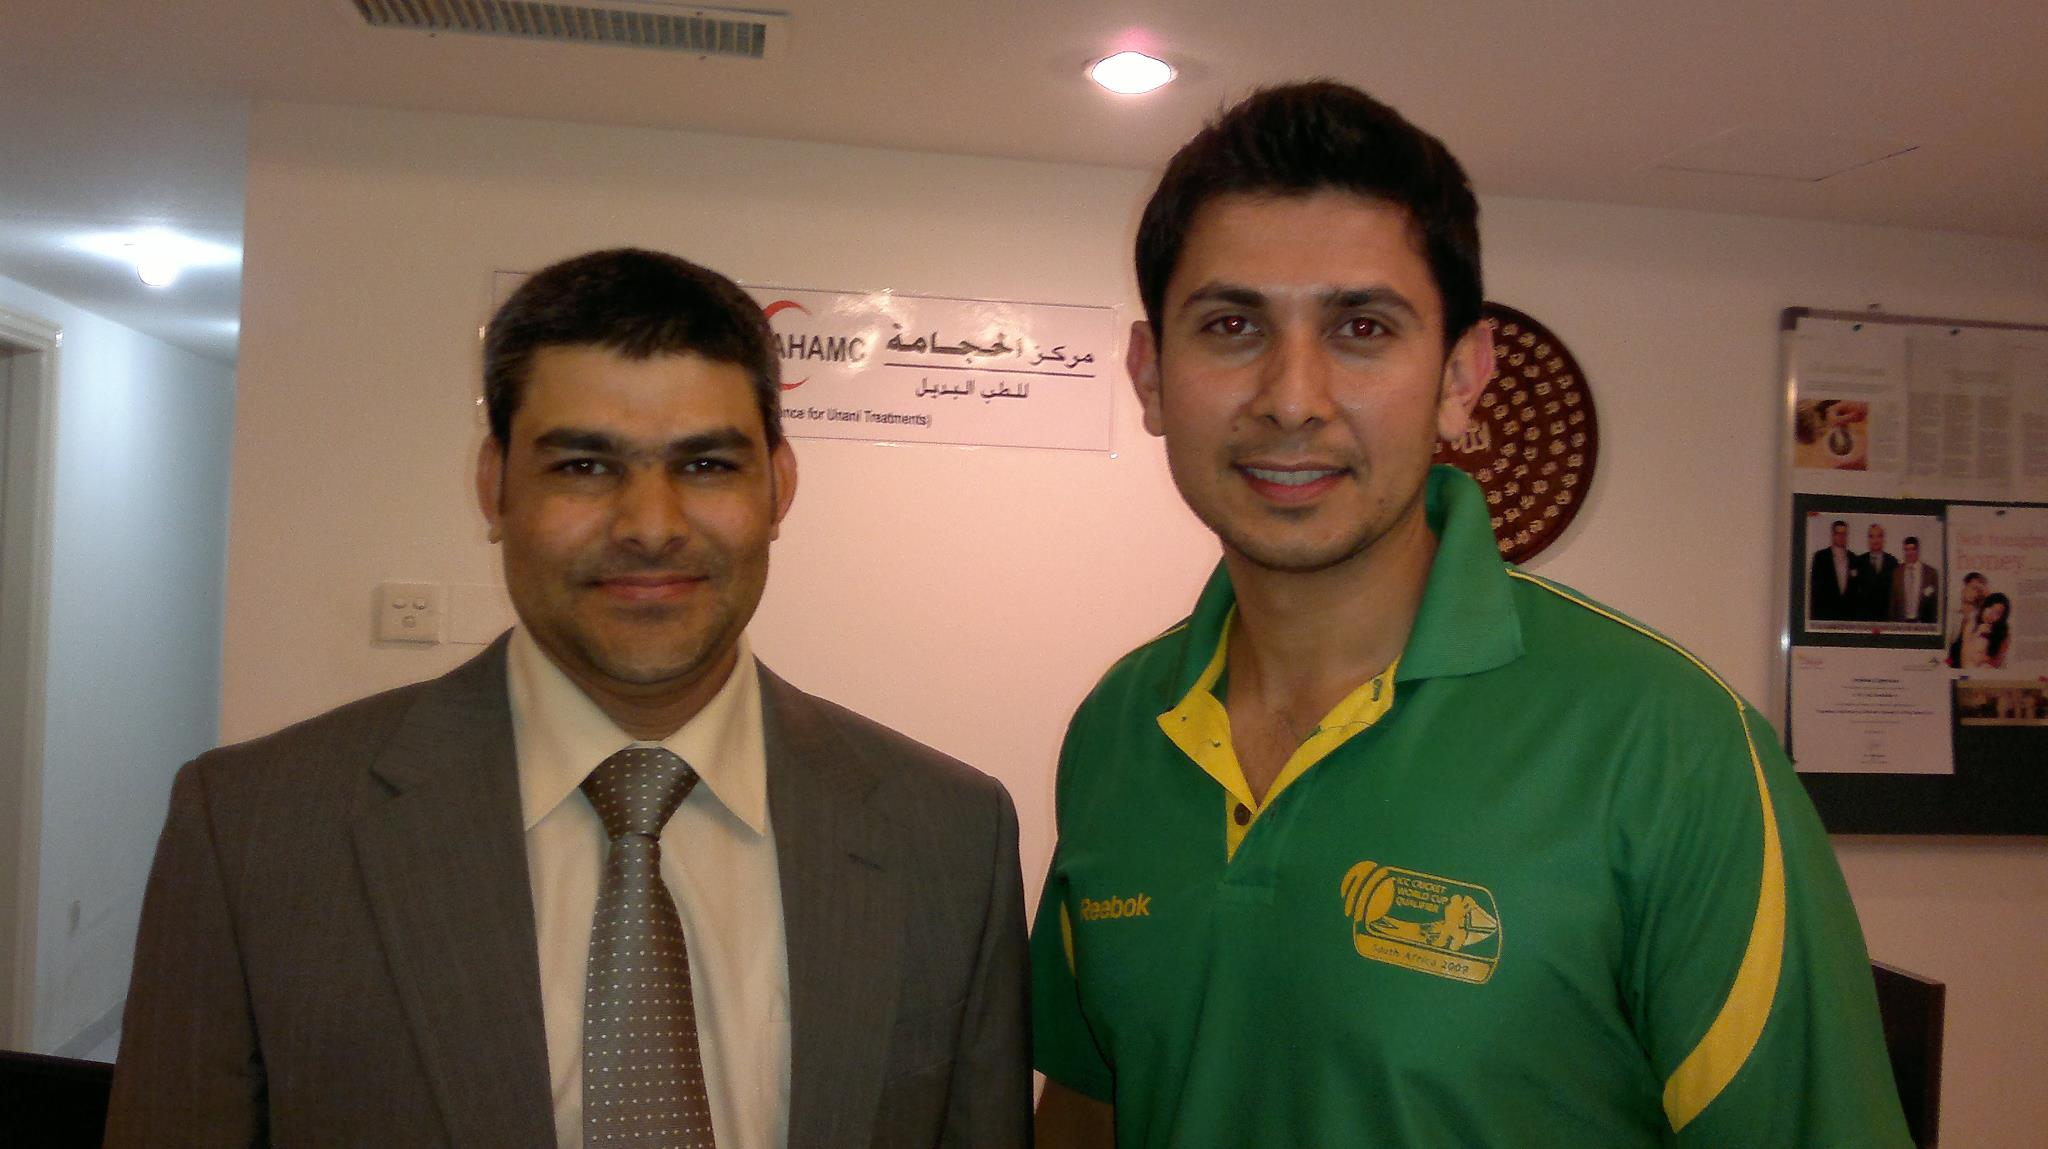 UAE cricket Player, Qasim Zubair